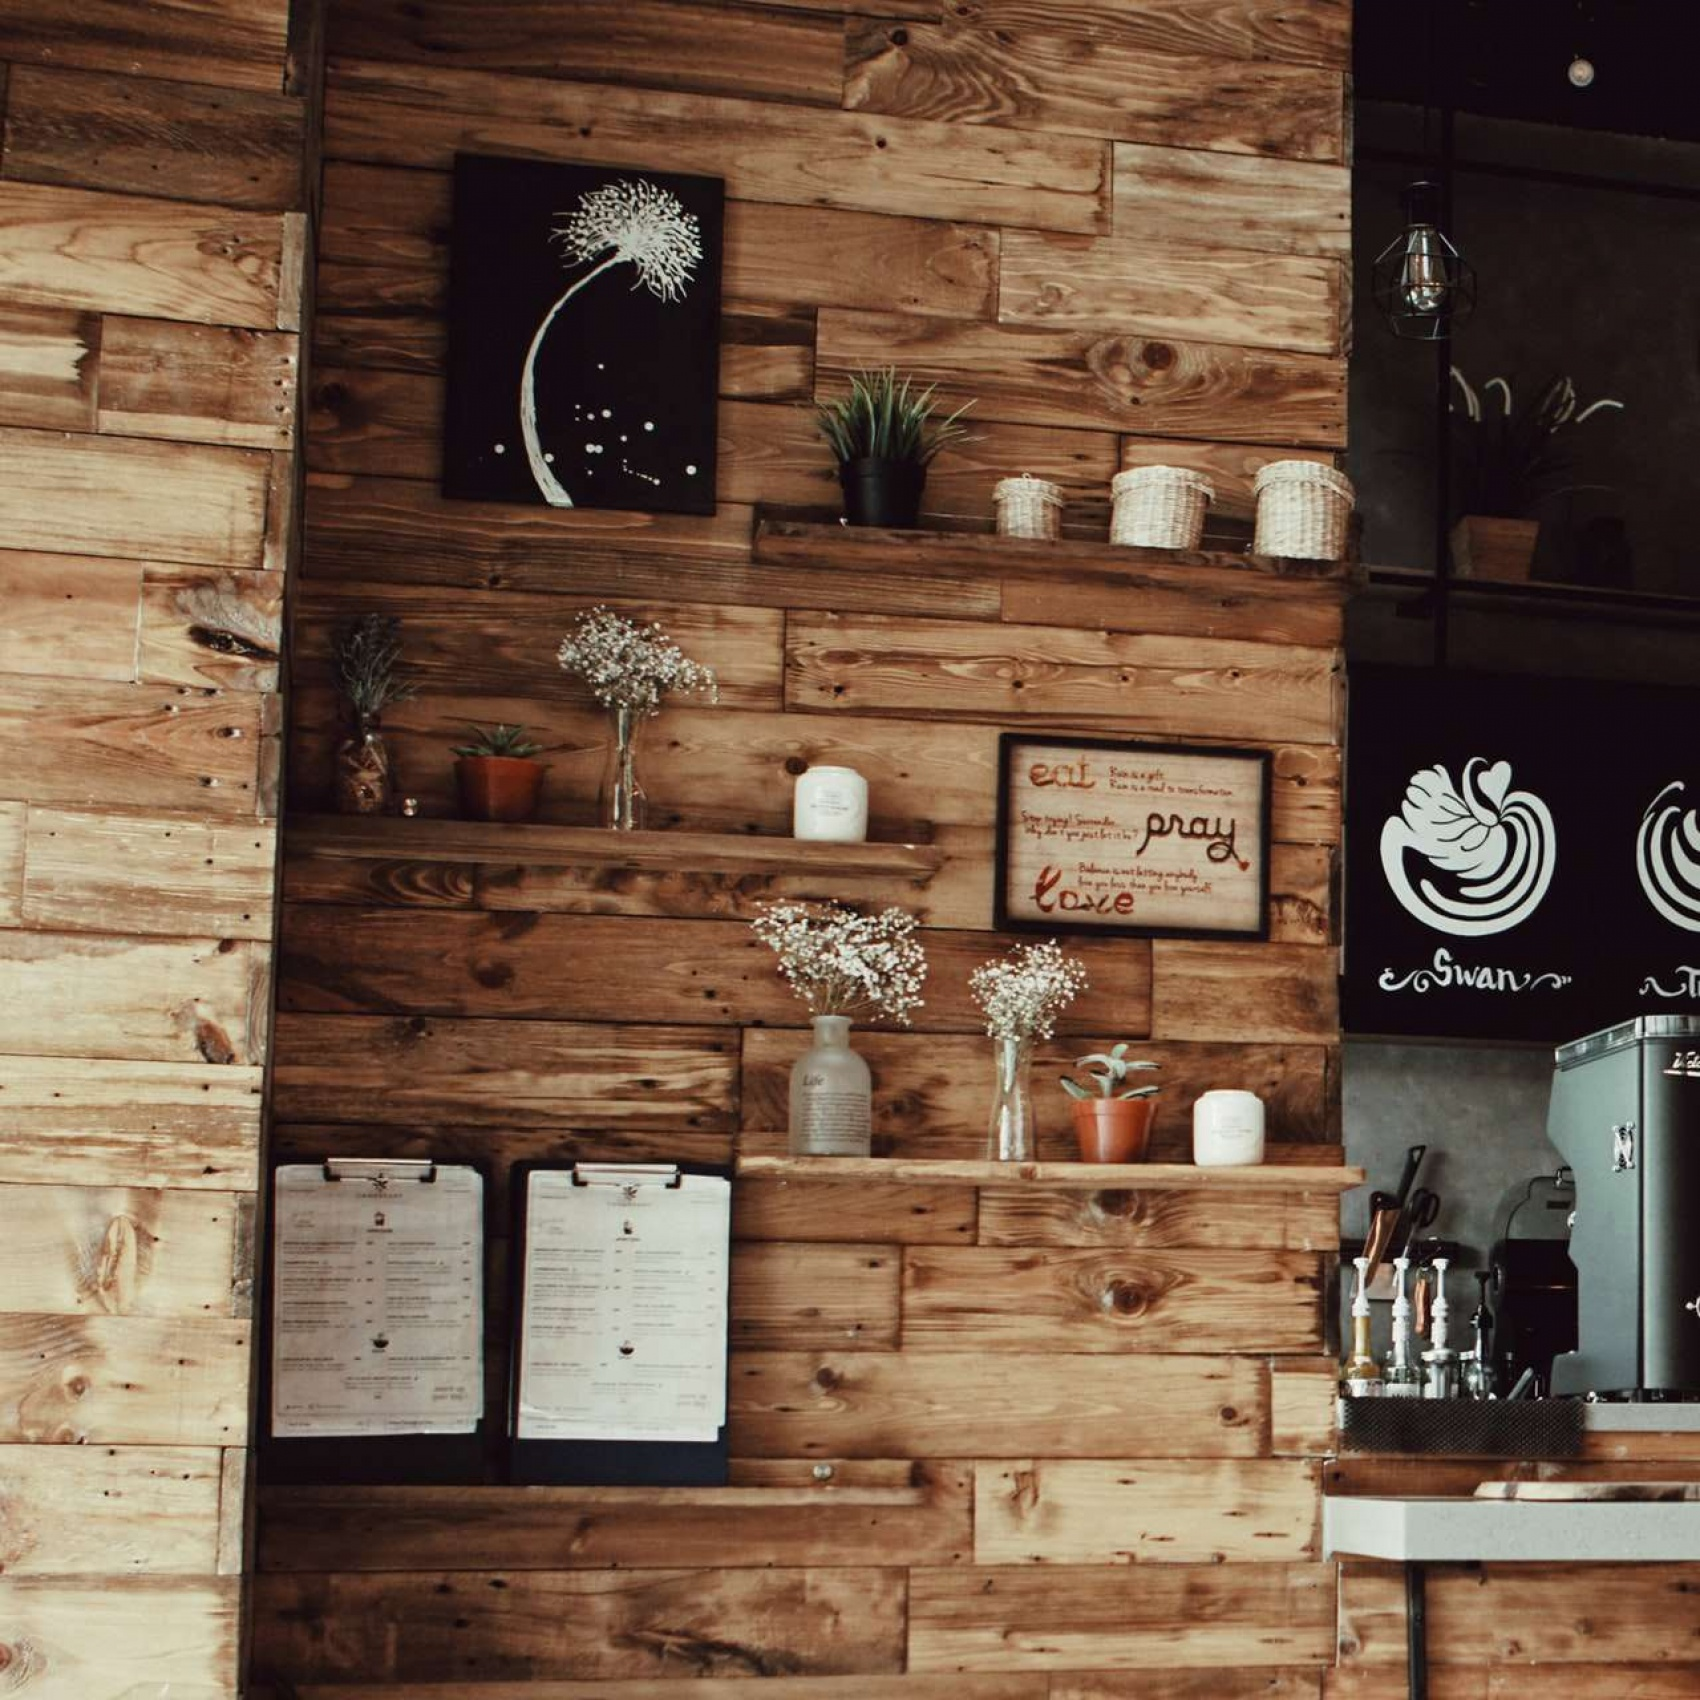 Inside Blend Coffee House